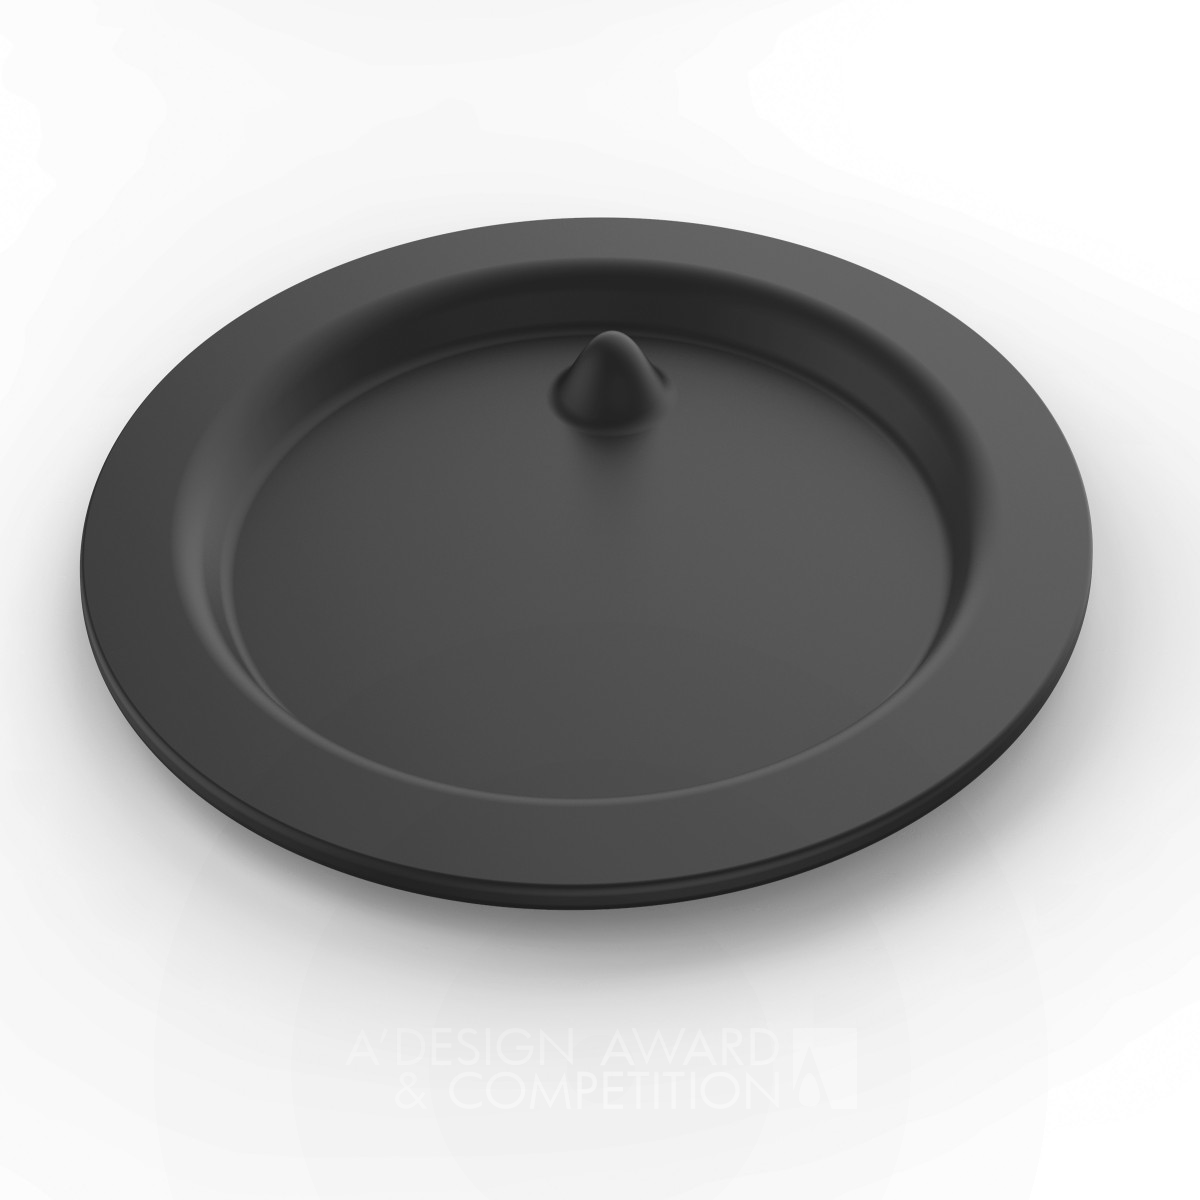 3D Plate Food Separation by Surfaces